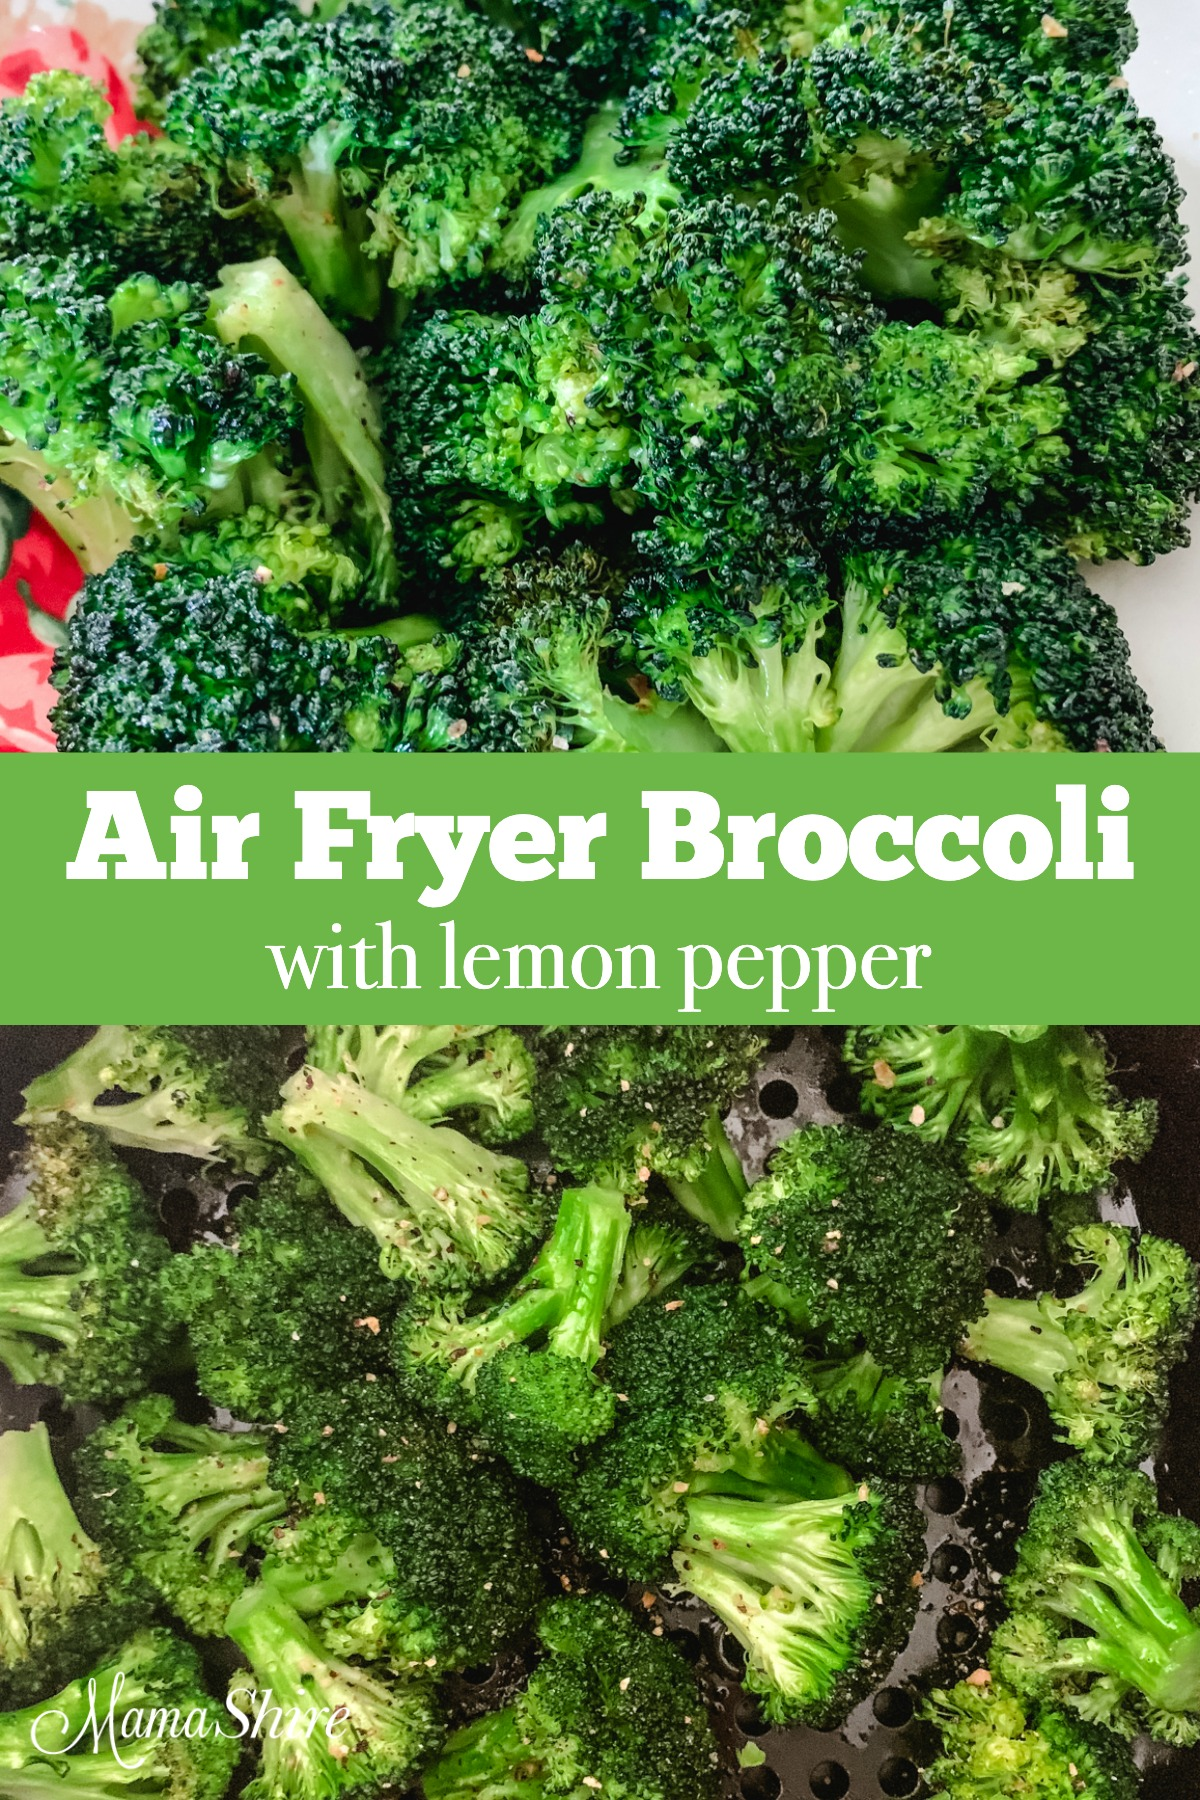 Air fryer broccoli with lemon pepper.